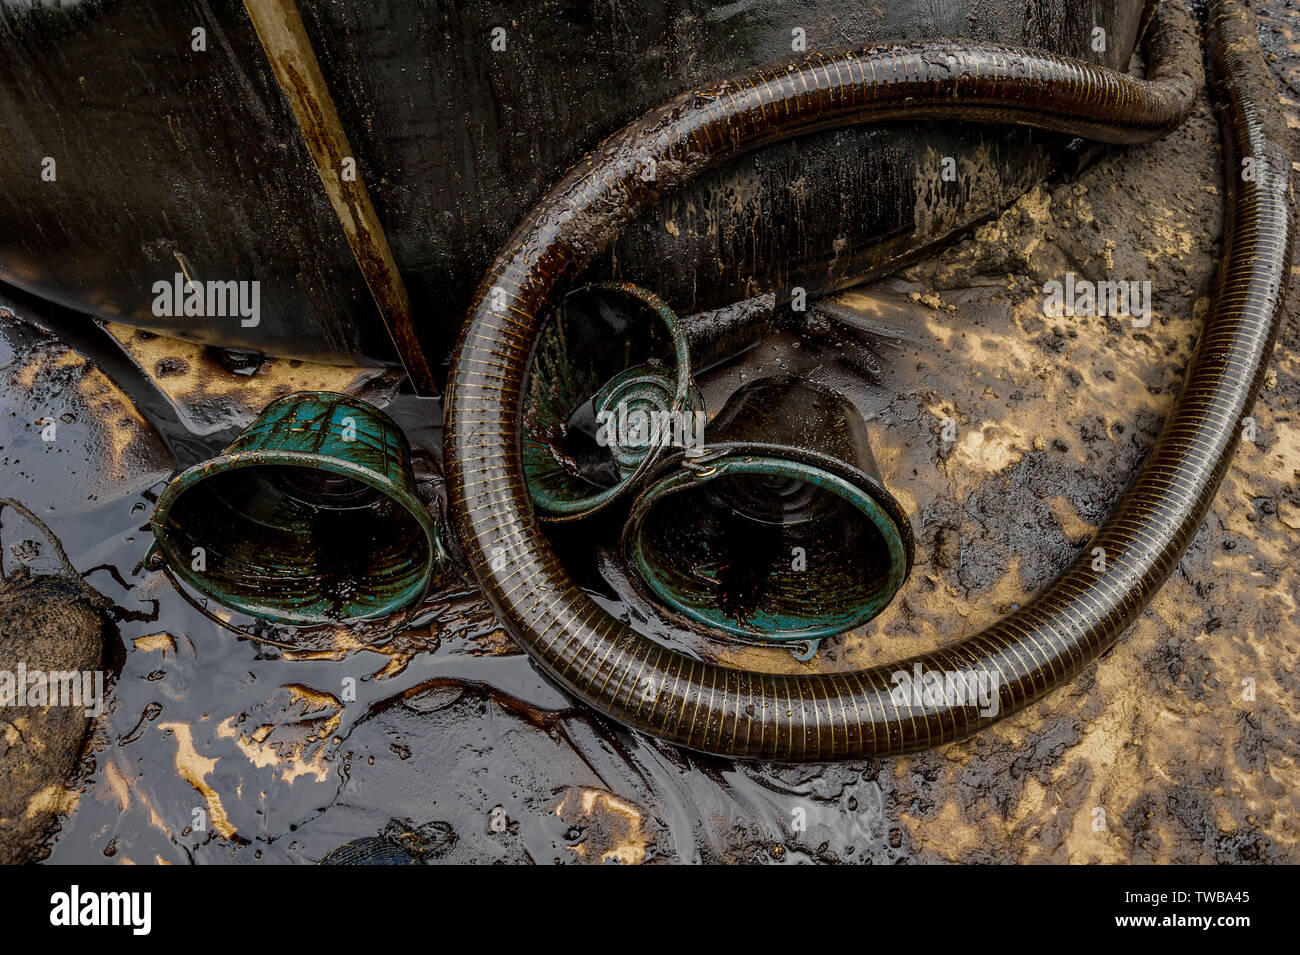 Oil spill diaster - Greasy oil tools and polluting environment at Samet Island, Rayong, Thailand - Stock Image